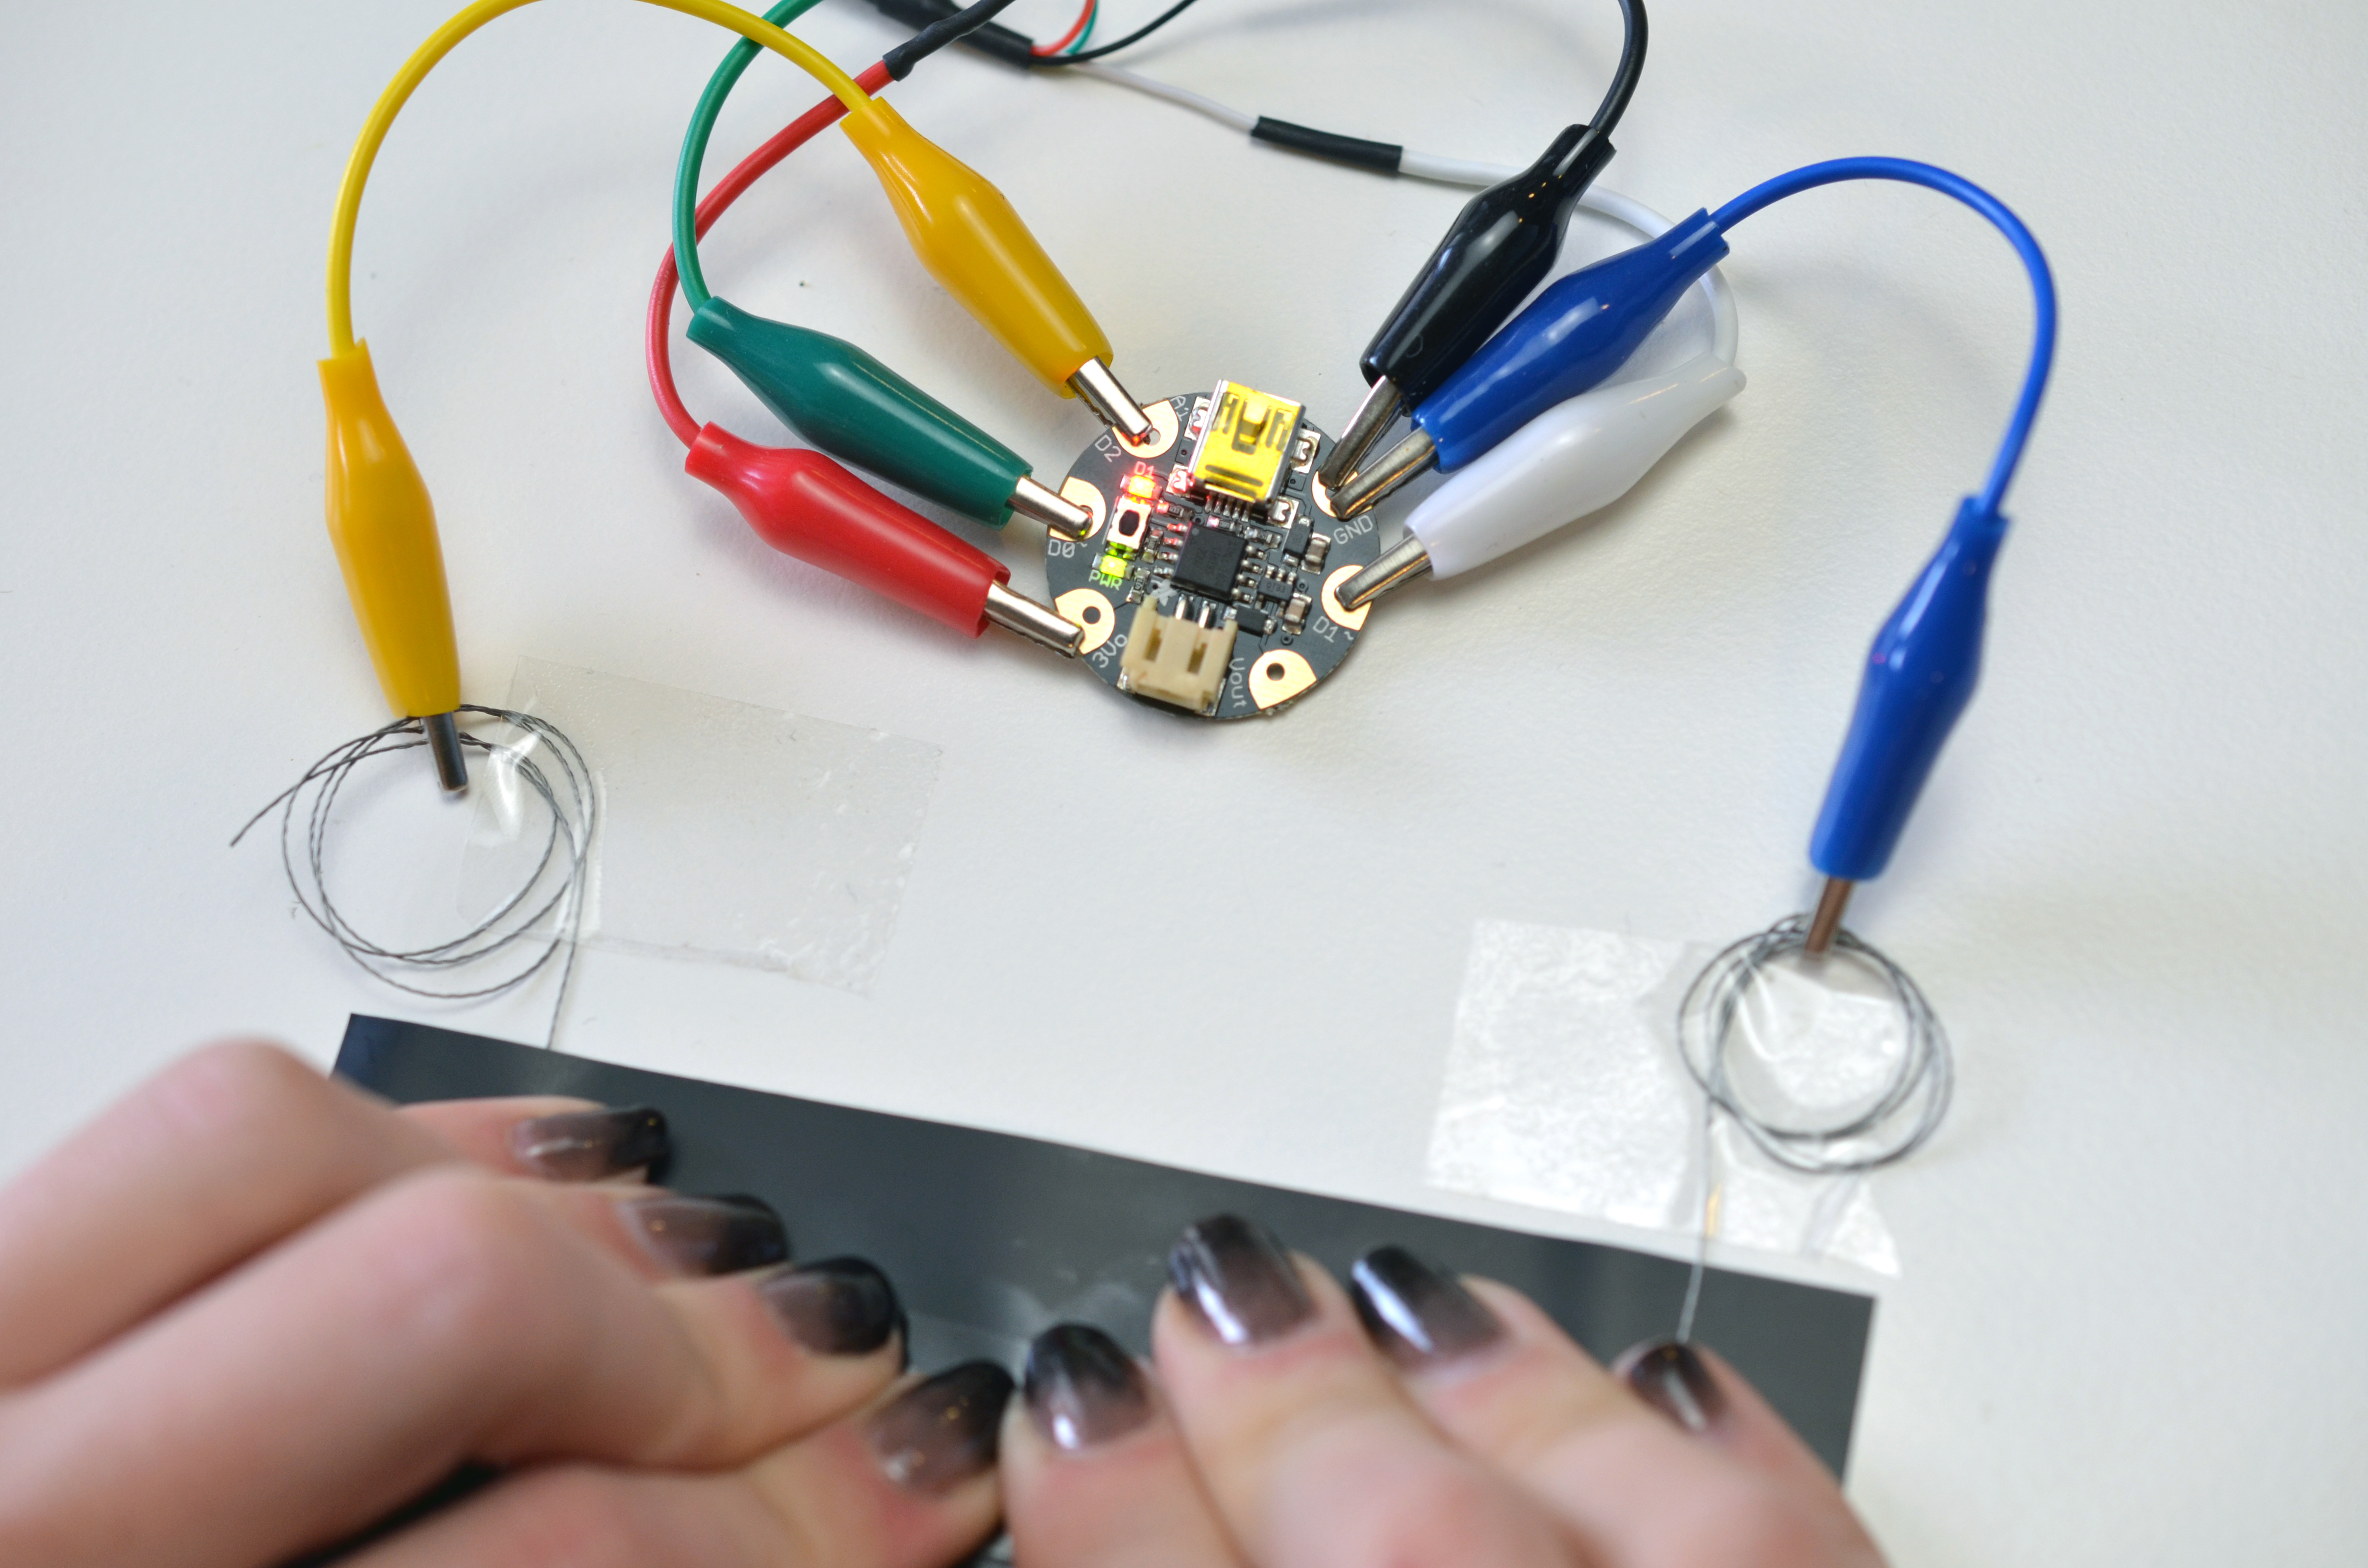 sensors_software-serial-console-cable-05.jpg